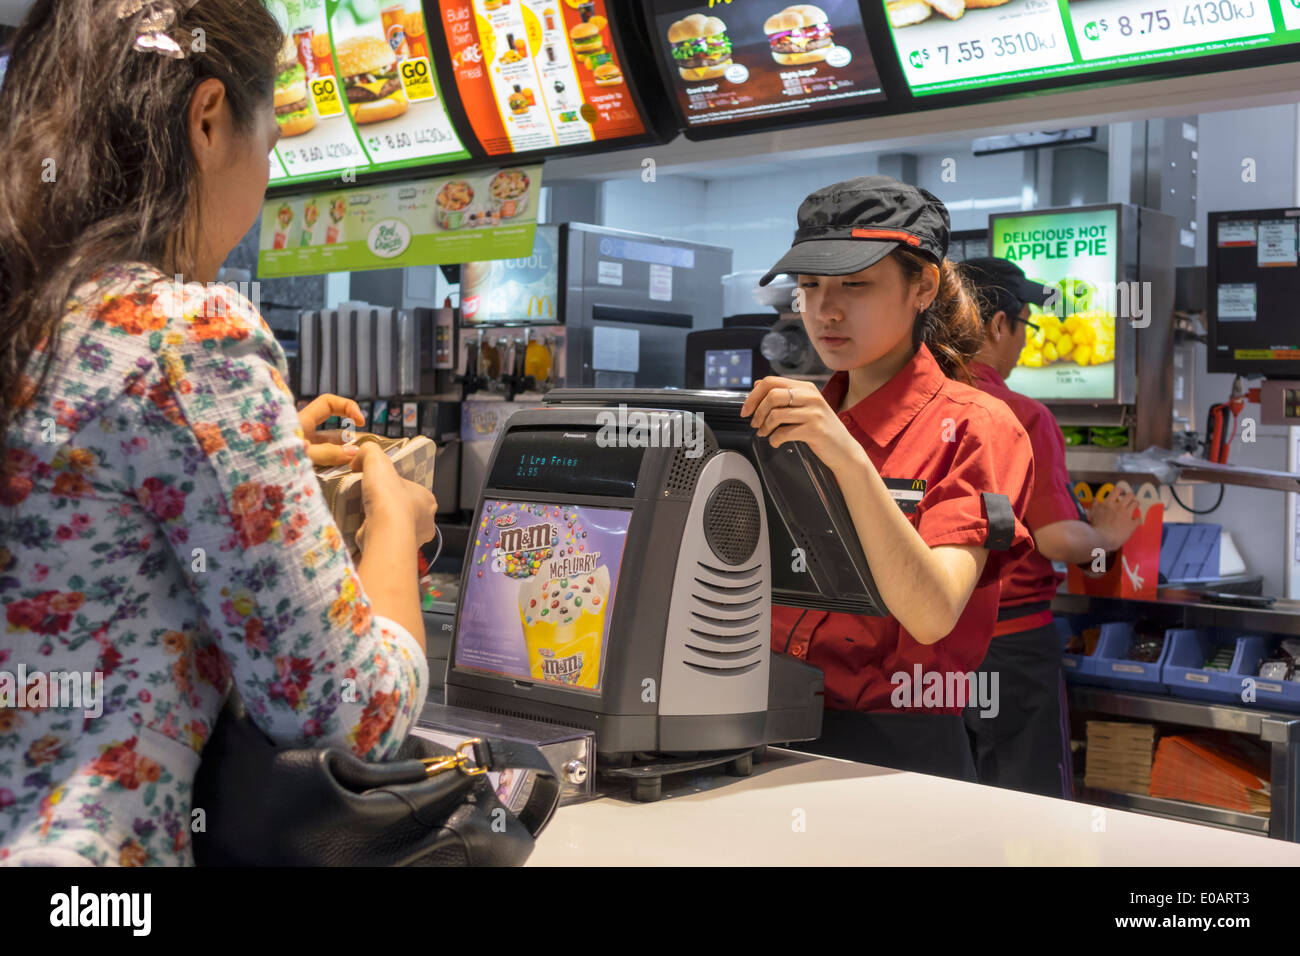 Sydney Australia NSW New South Wales CBD Central Business District Circular Quay McDonald's restaurant fast food counter ordering Asian woman job empl - Stock Image